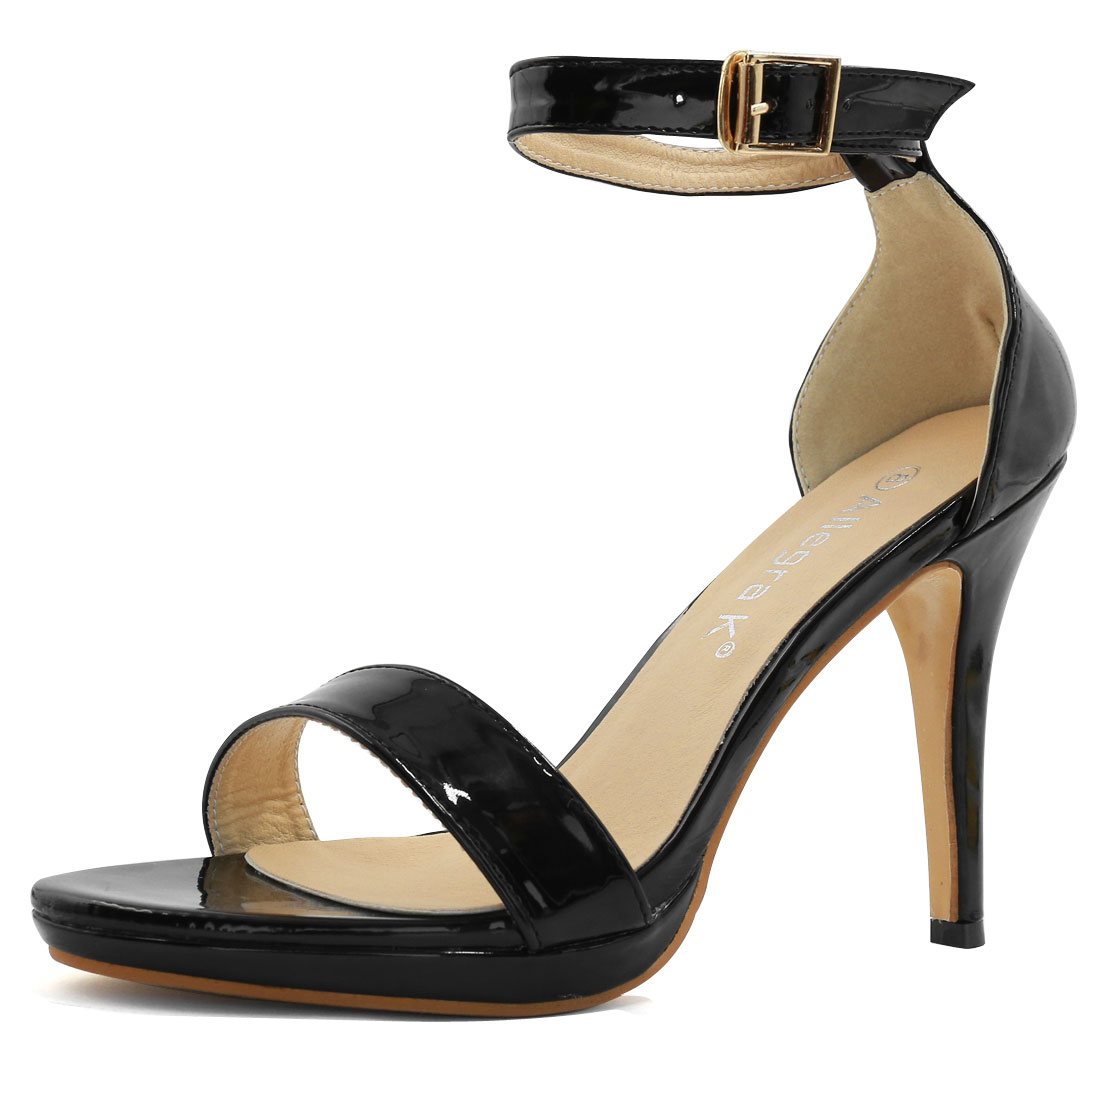 Woman Open Toe High Heel Metallic Ankle Strap Sandals Black US 9